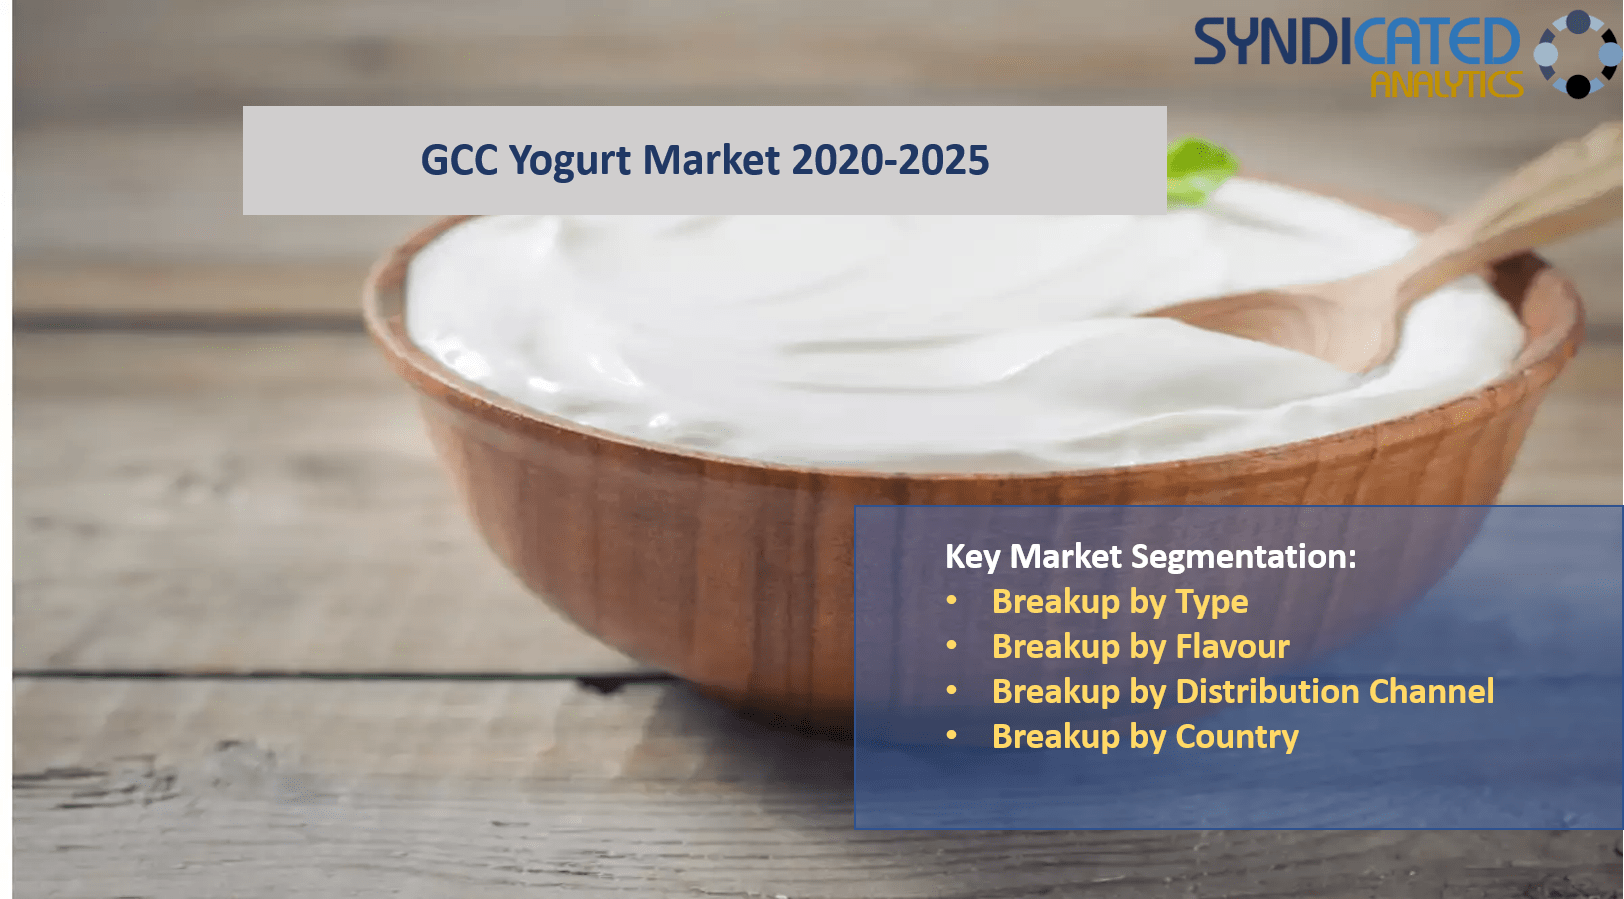 GCC Yogurt Market Report 2020-2025